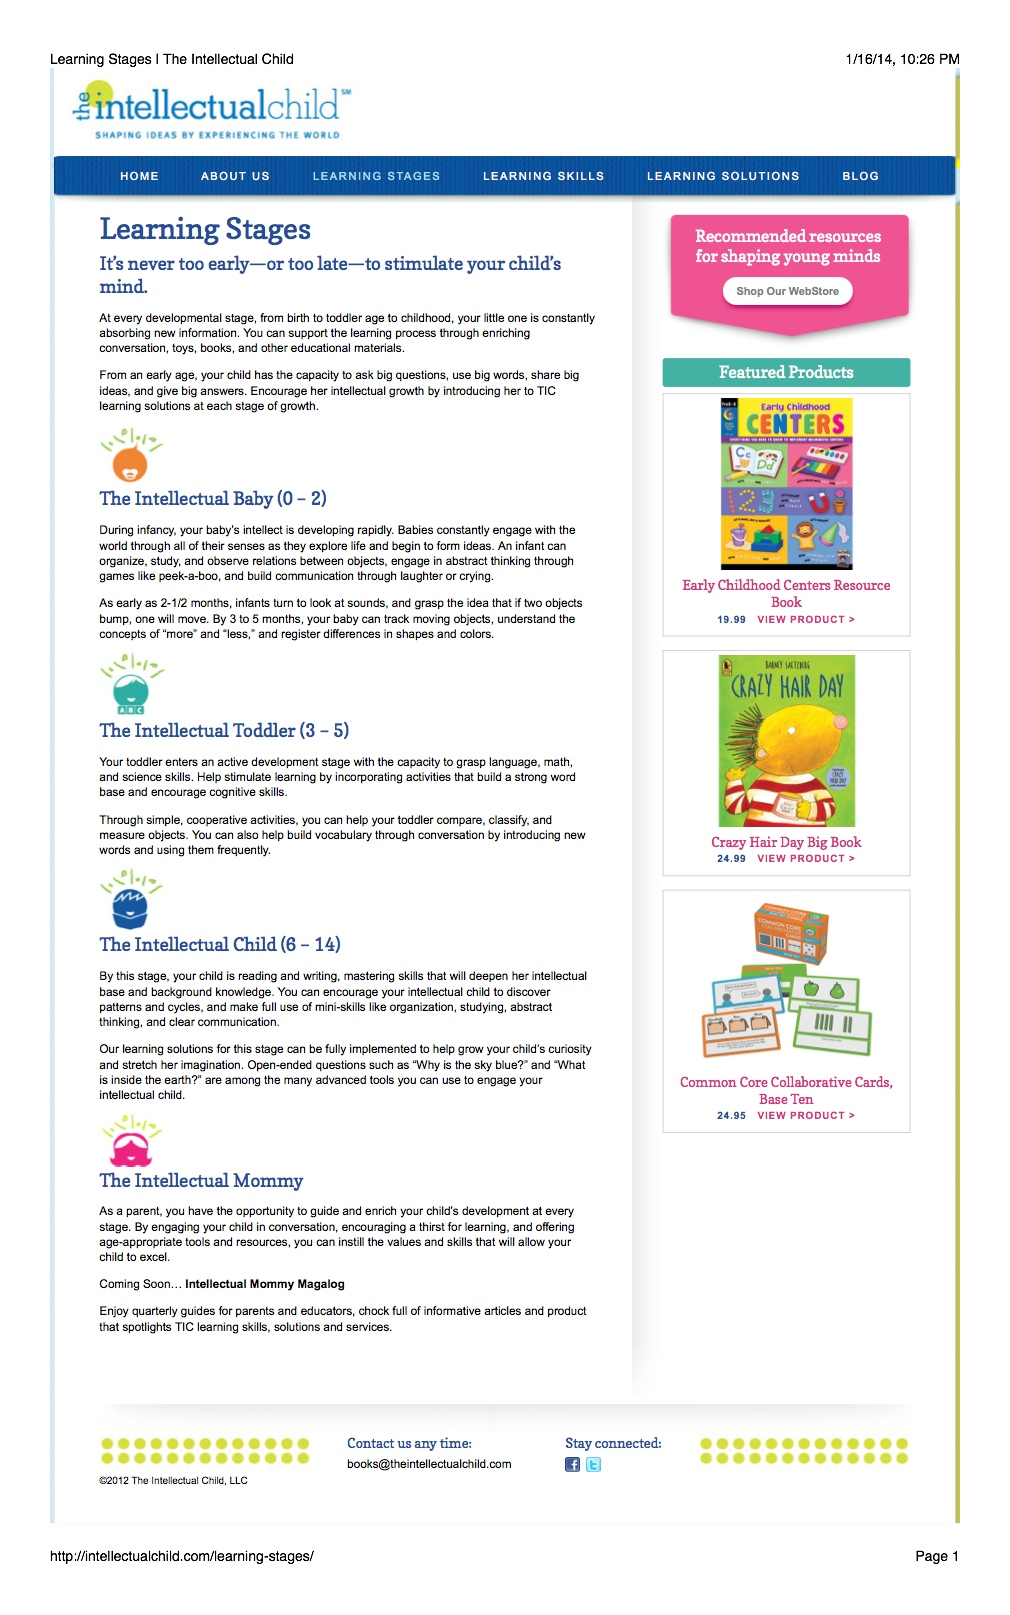 Web Copy: Children's Learning Stages